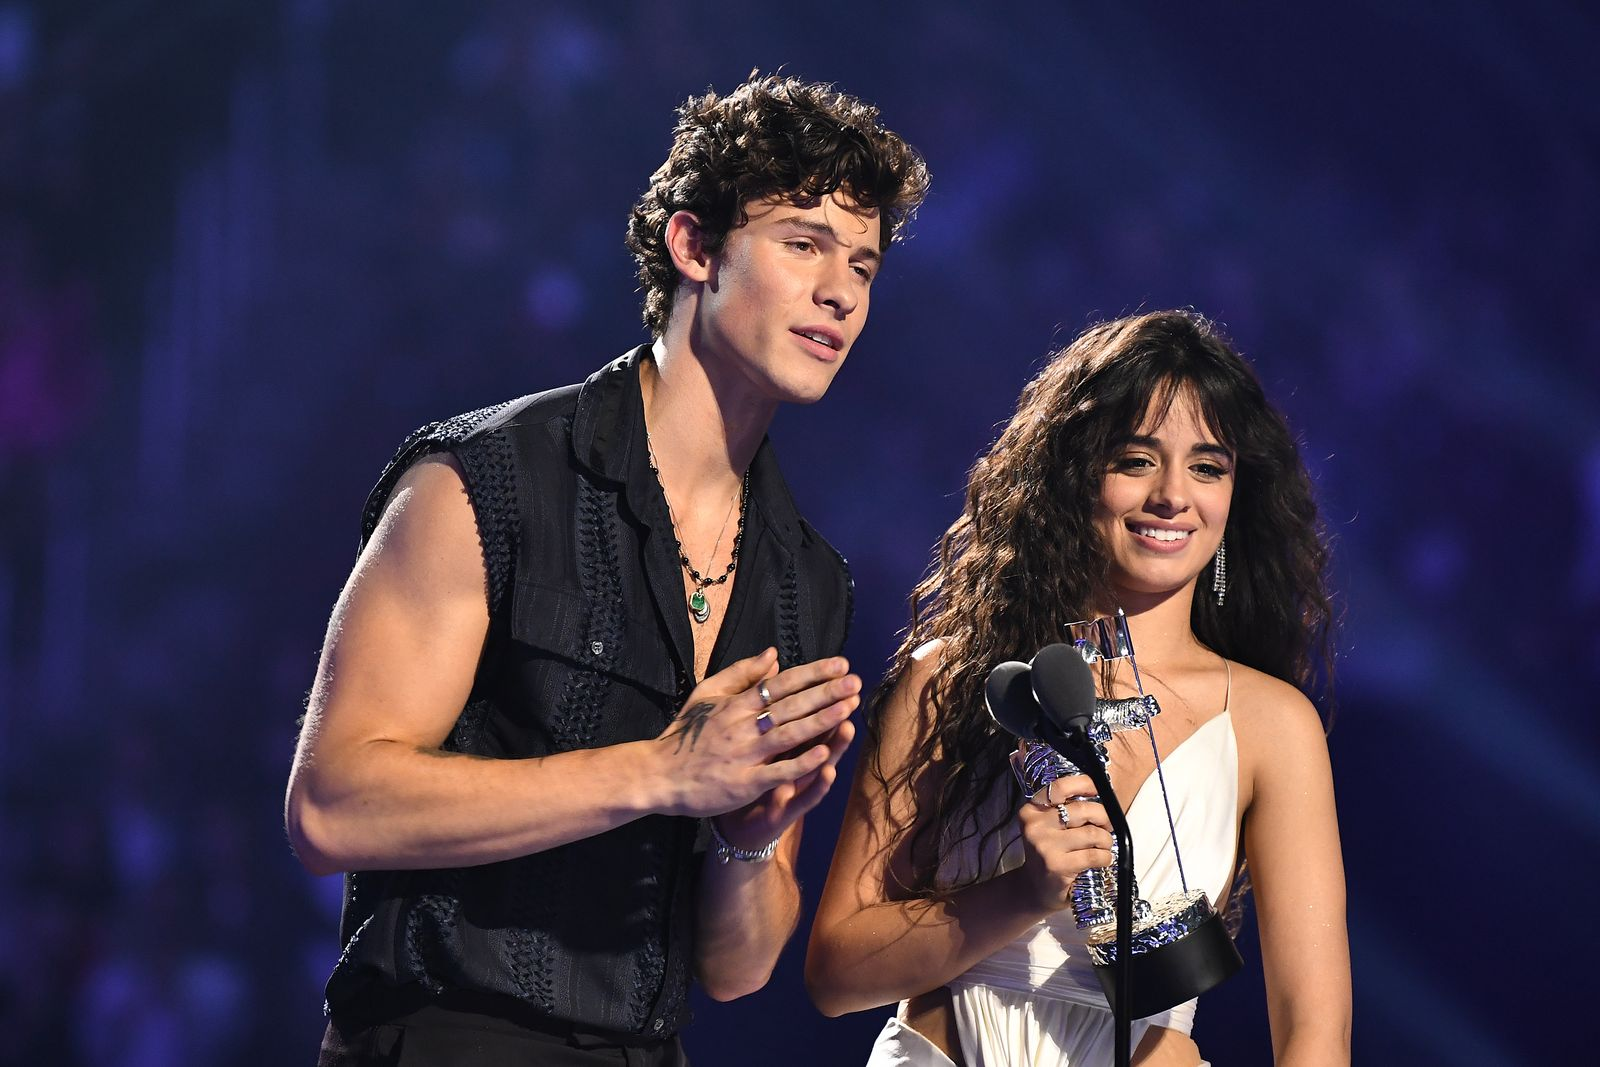 Shawn Mendes and Camila Cabello receive 'Best Collaboration' award onstage at the 2019 MTV Video Music Awards at Prudential Center on August 26, 2019   Photo: Getty Images